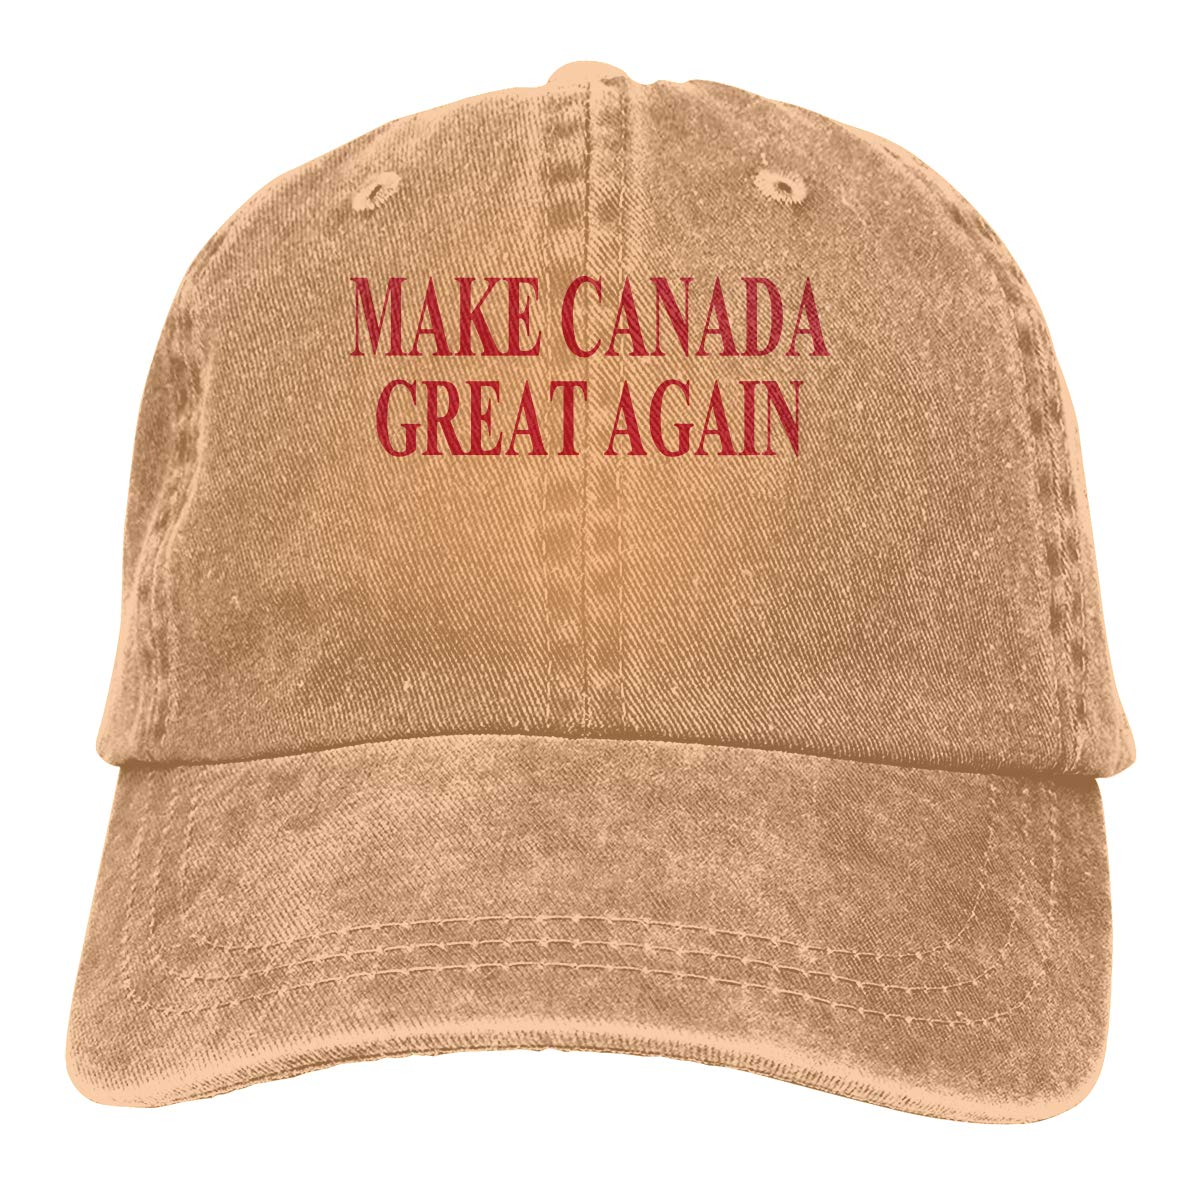 PMGM-C Make Canada Great Again Unisex Personalize Jeans Outdoor Sports Hat Adjustable Baseball Cap